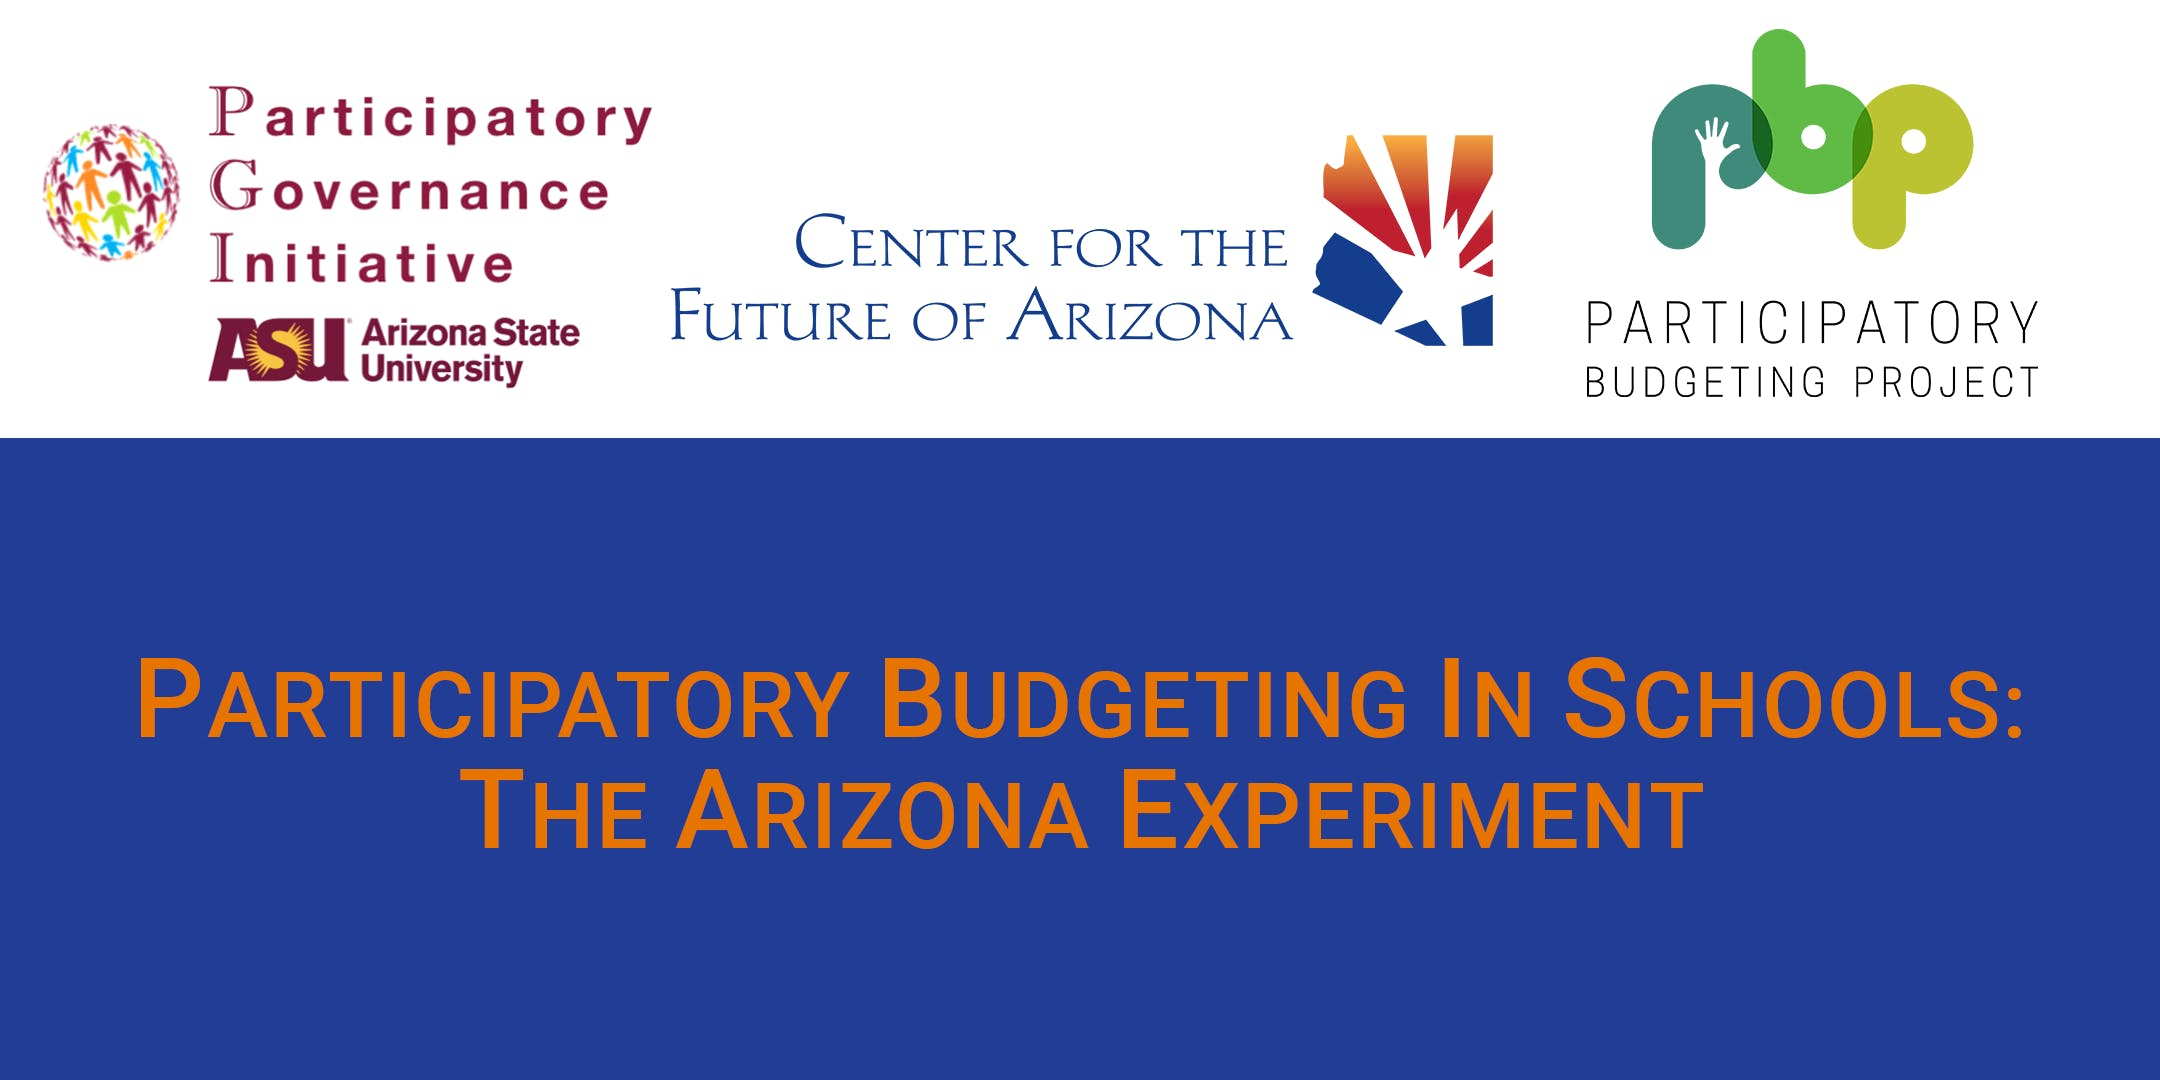 Participatory Budgeting in Schools: The Arizona Experiment